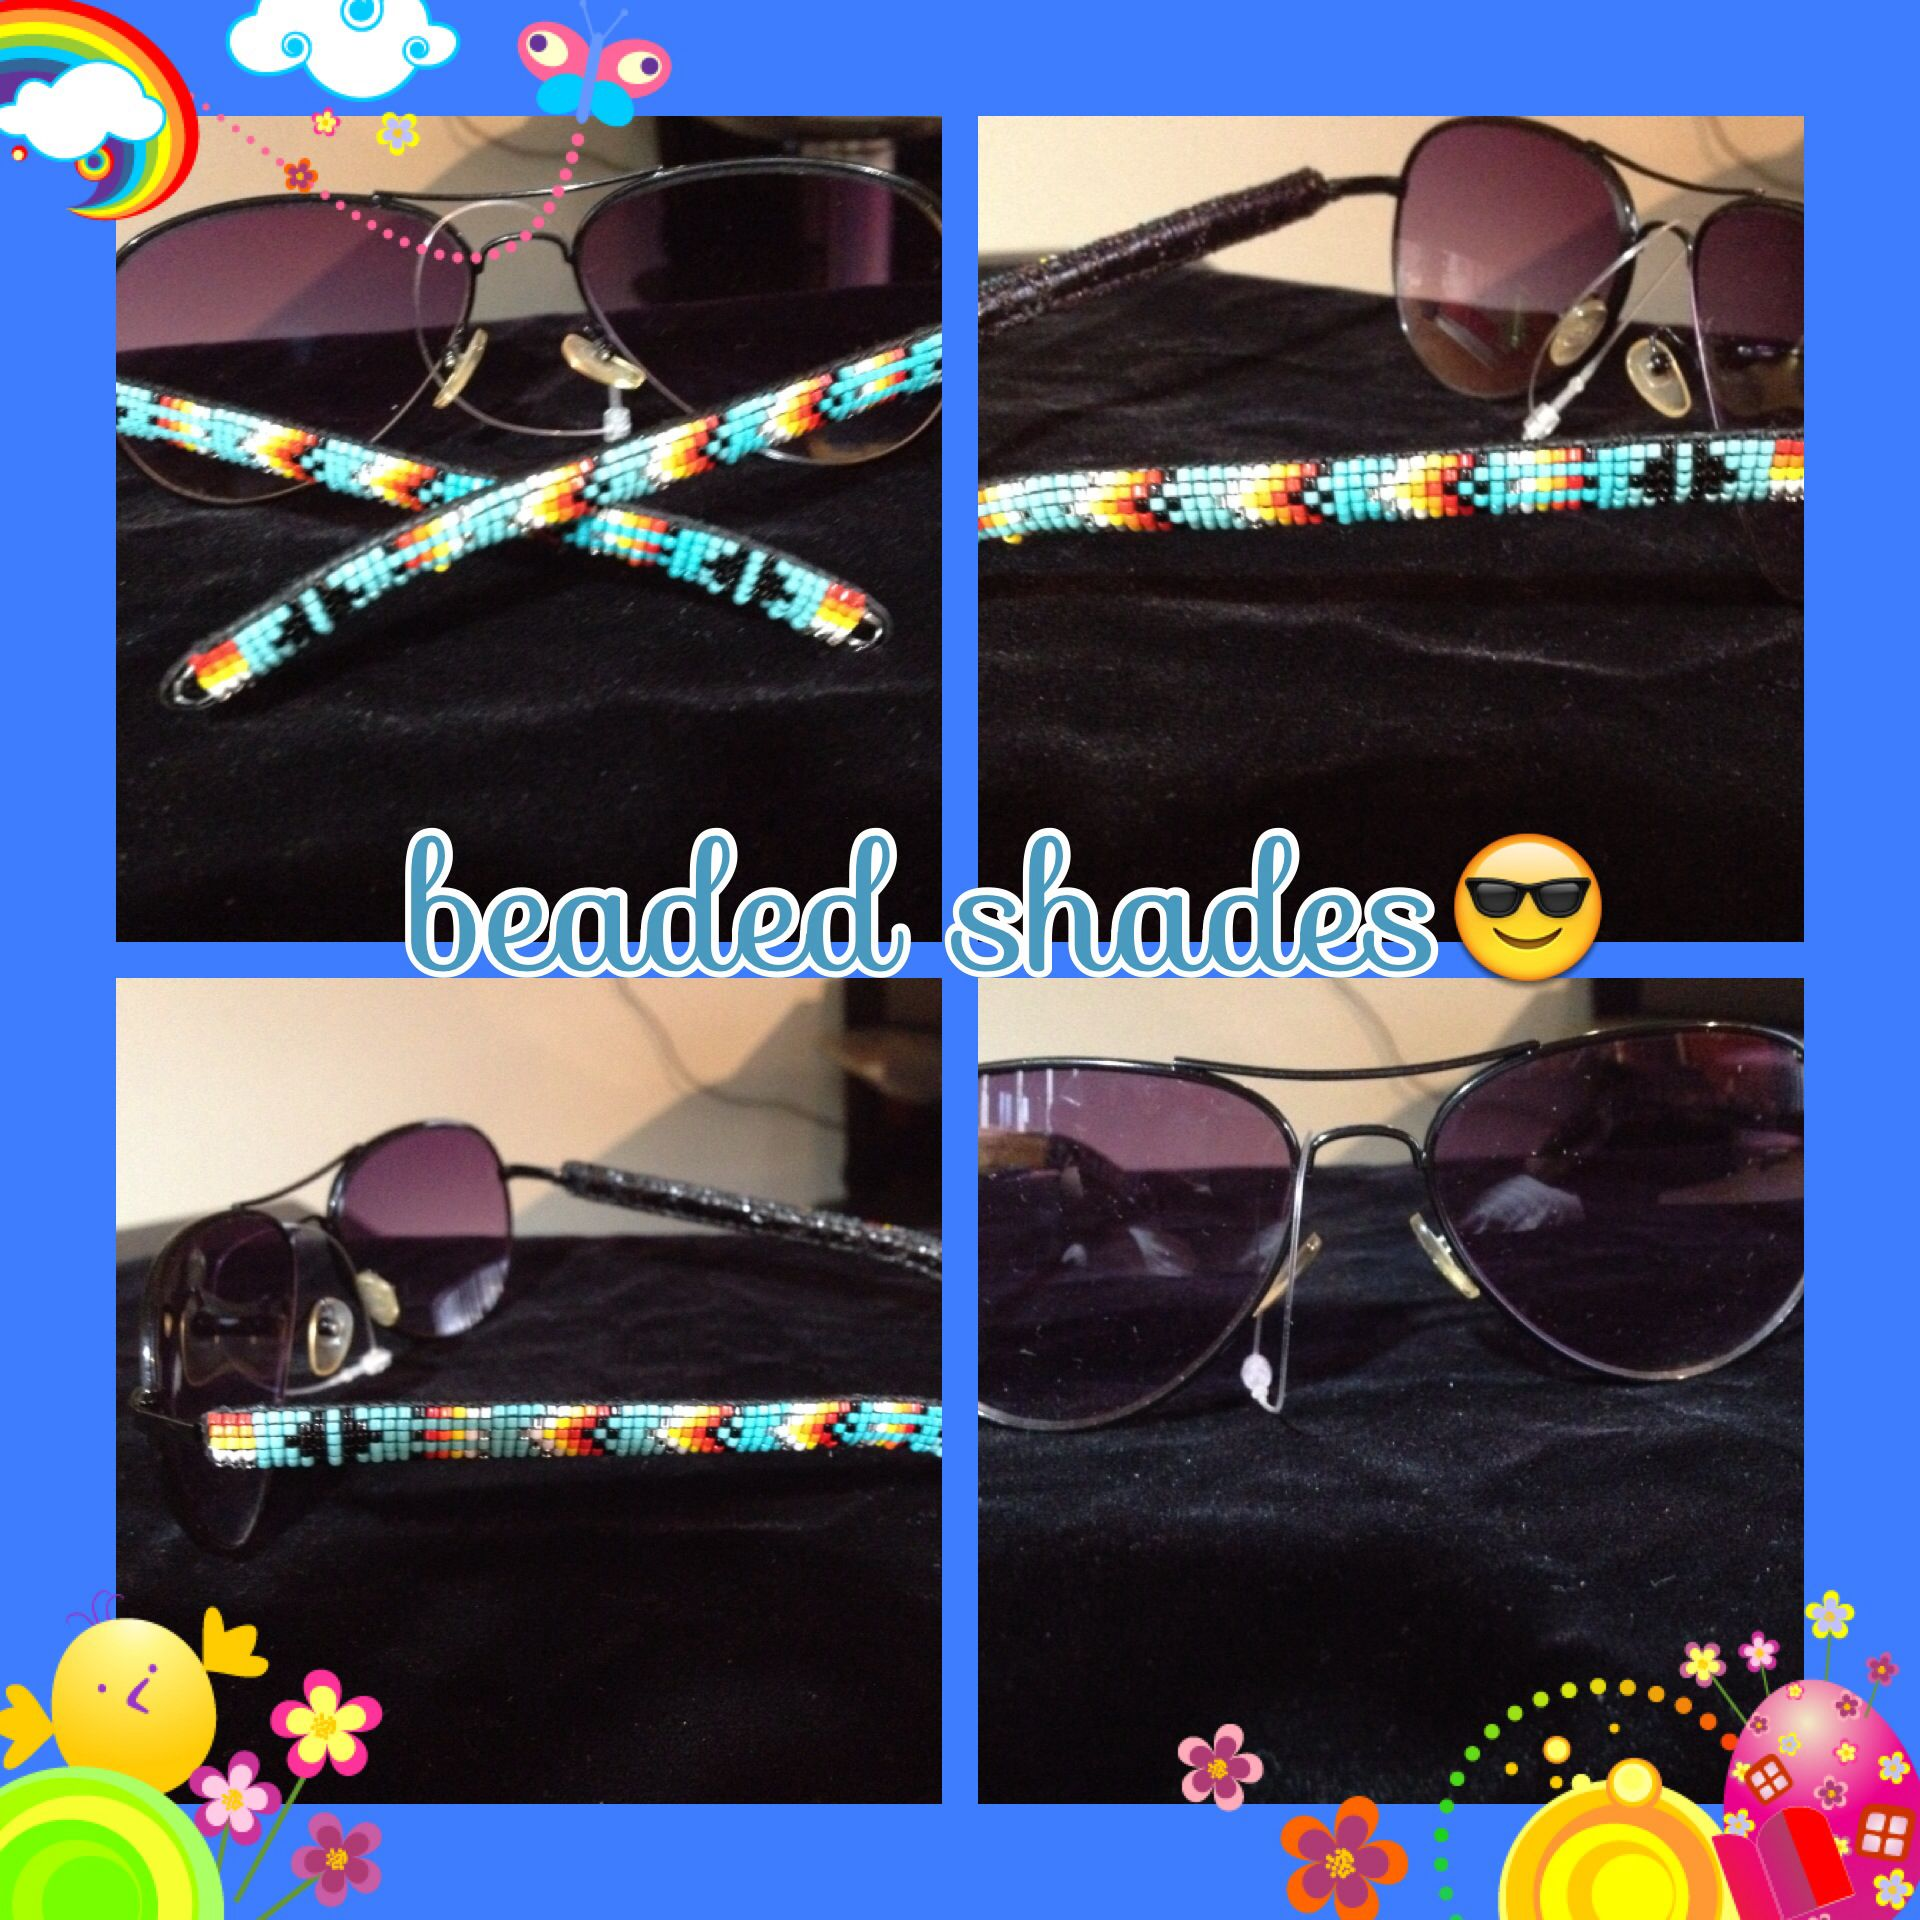 Rock these shades #1 These pair I absolutely loved But had to go to a good friend of mine:) cheydawn@hotmail.com